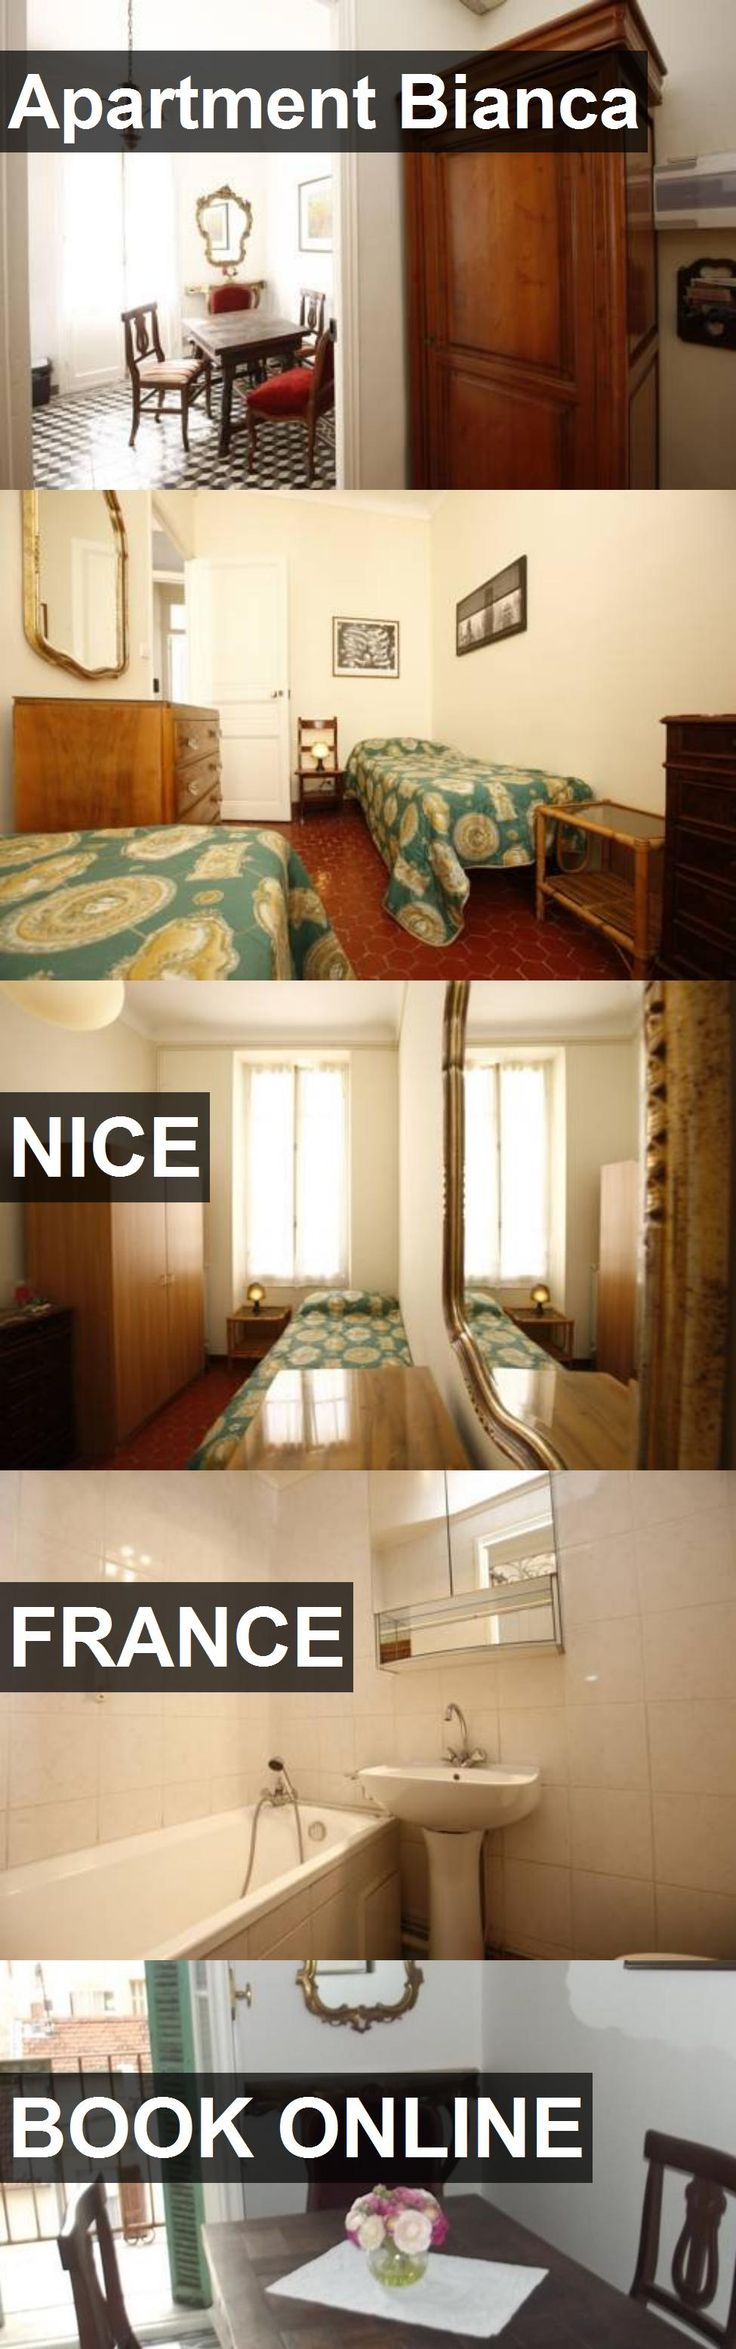 Hotel Apartment Bianca in Nice, France. For more information, photos, reviews and best prices please follow the link. #France #Nice #ApartmentBianca #hotel #travel #vacation